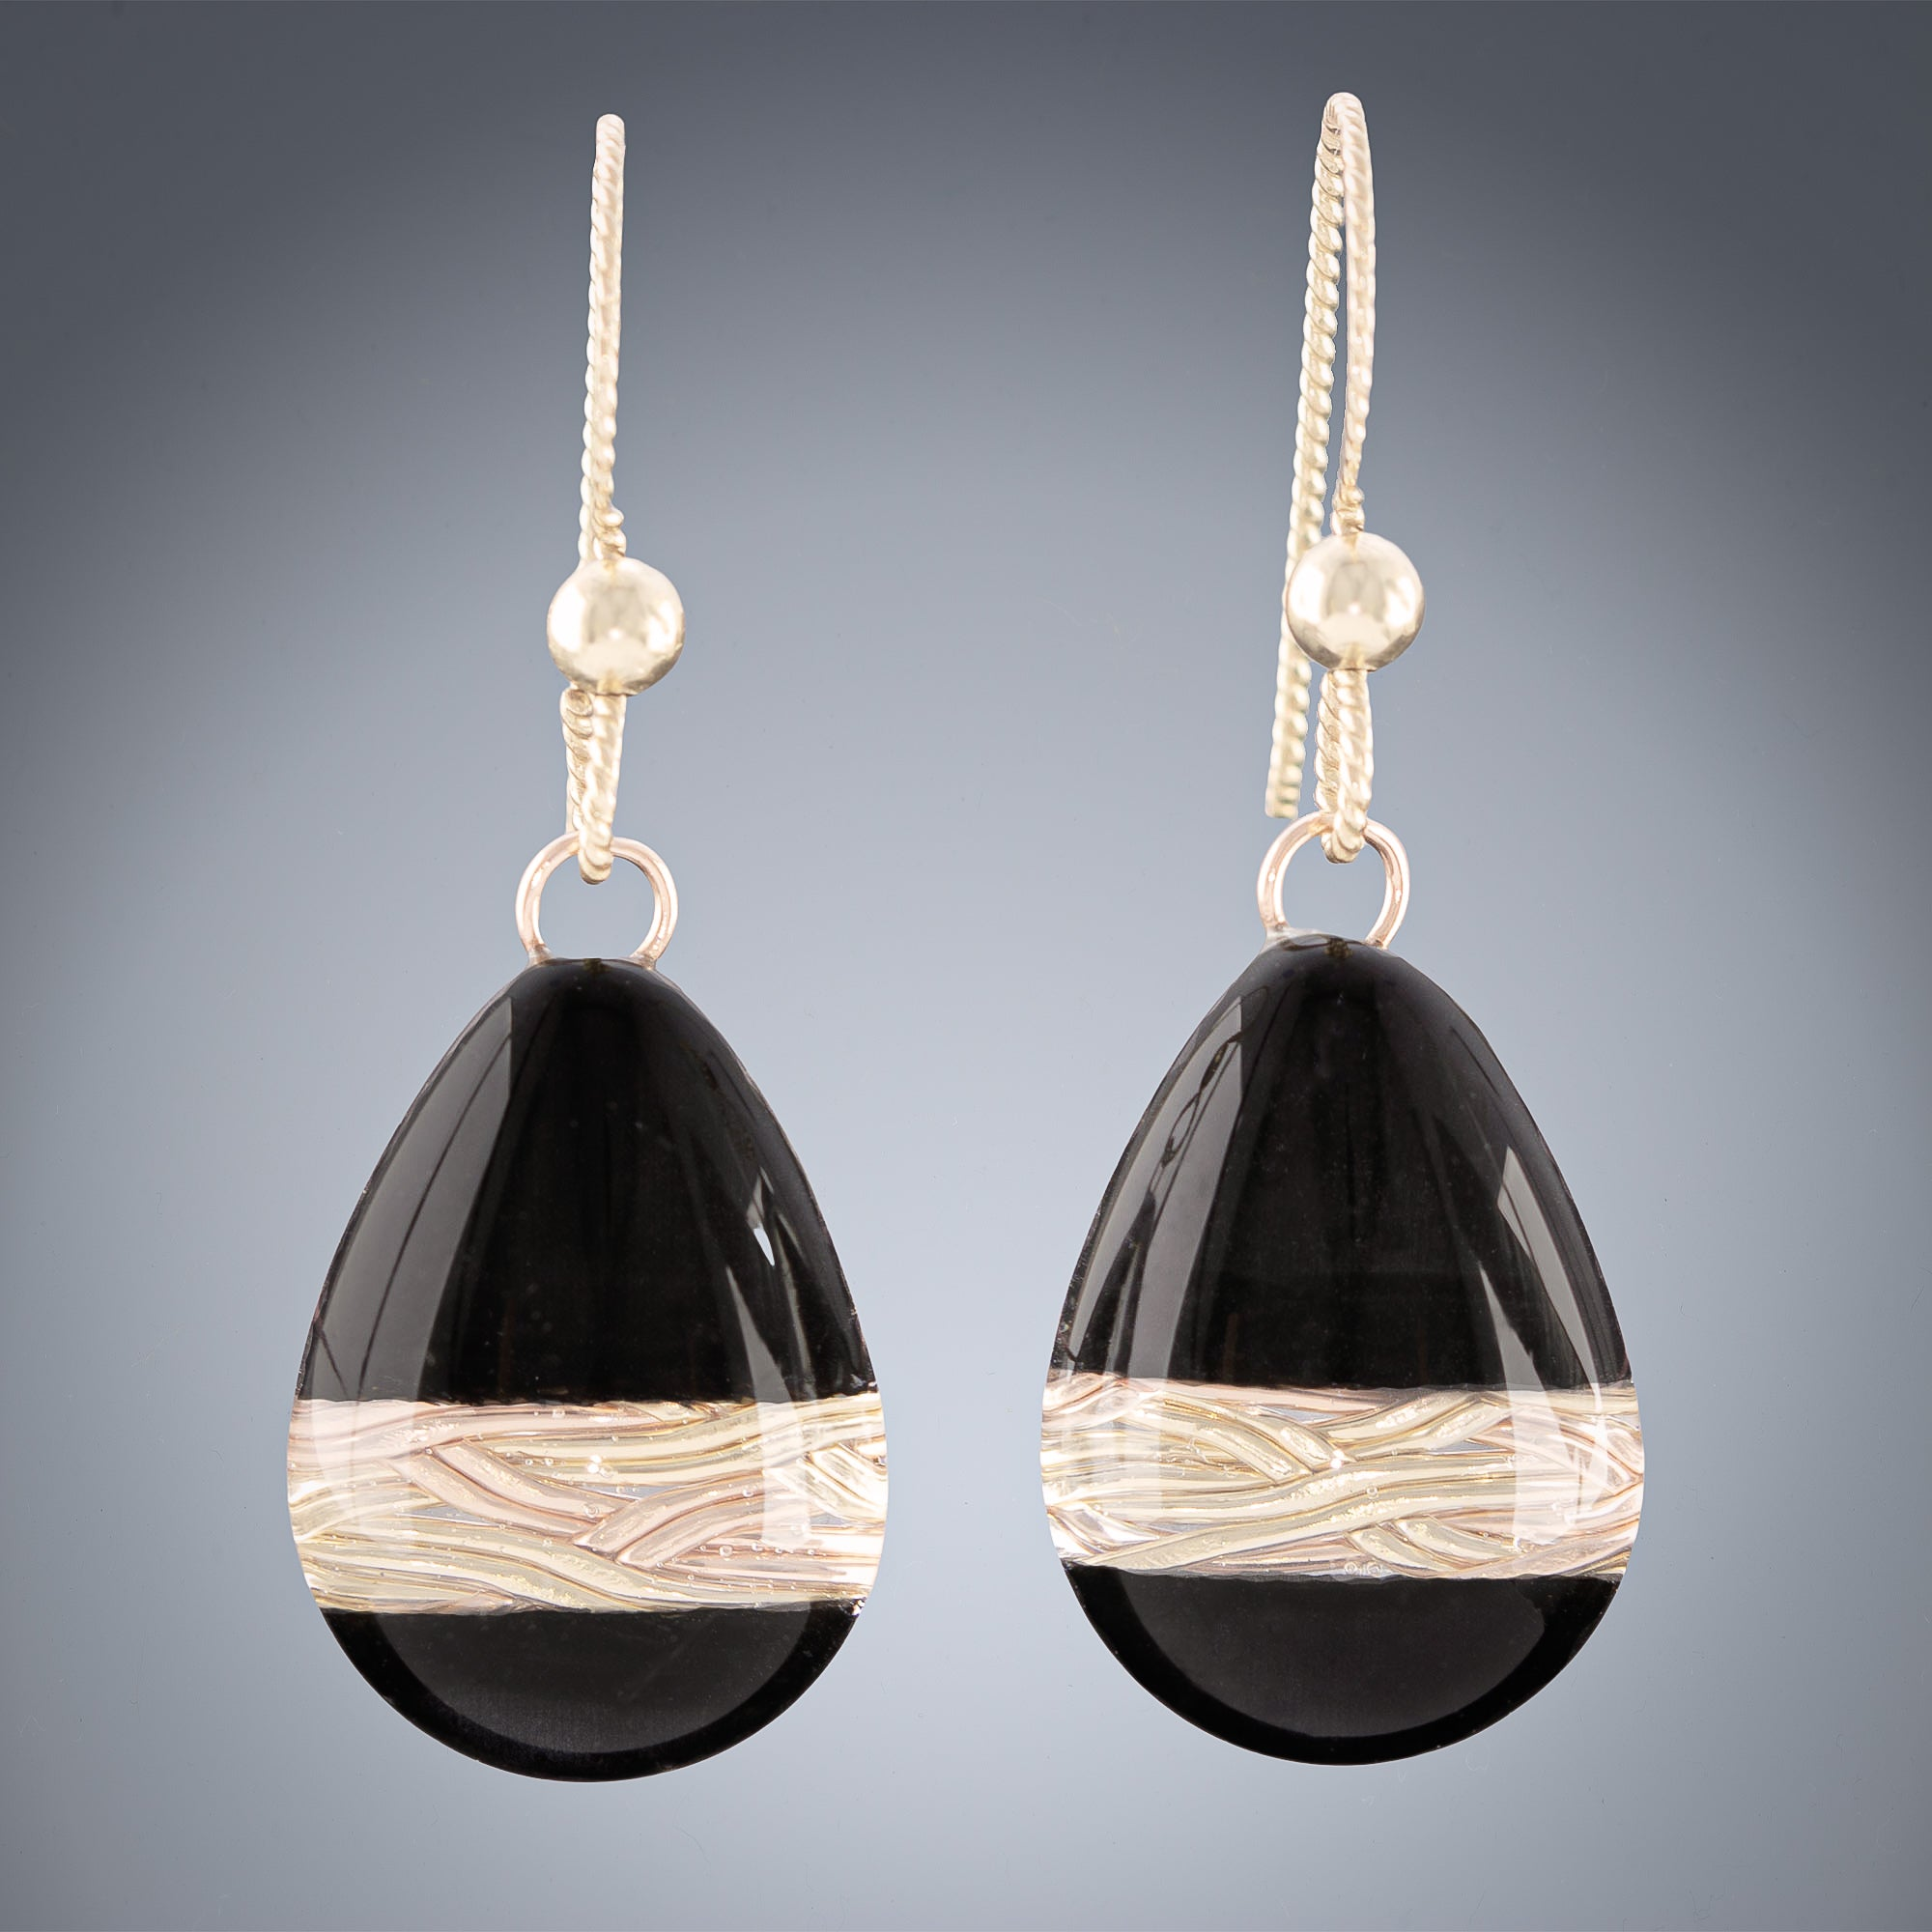 Handwoven Gold and Black Enamel Teardrop Dangle Earrings in both 14K Yellow and Rose Gold Fill